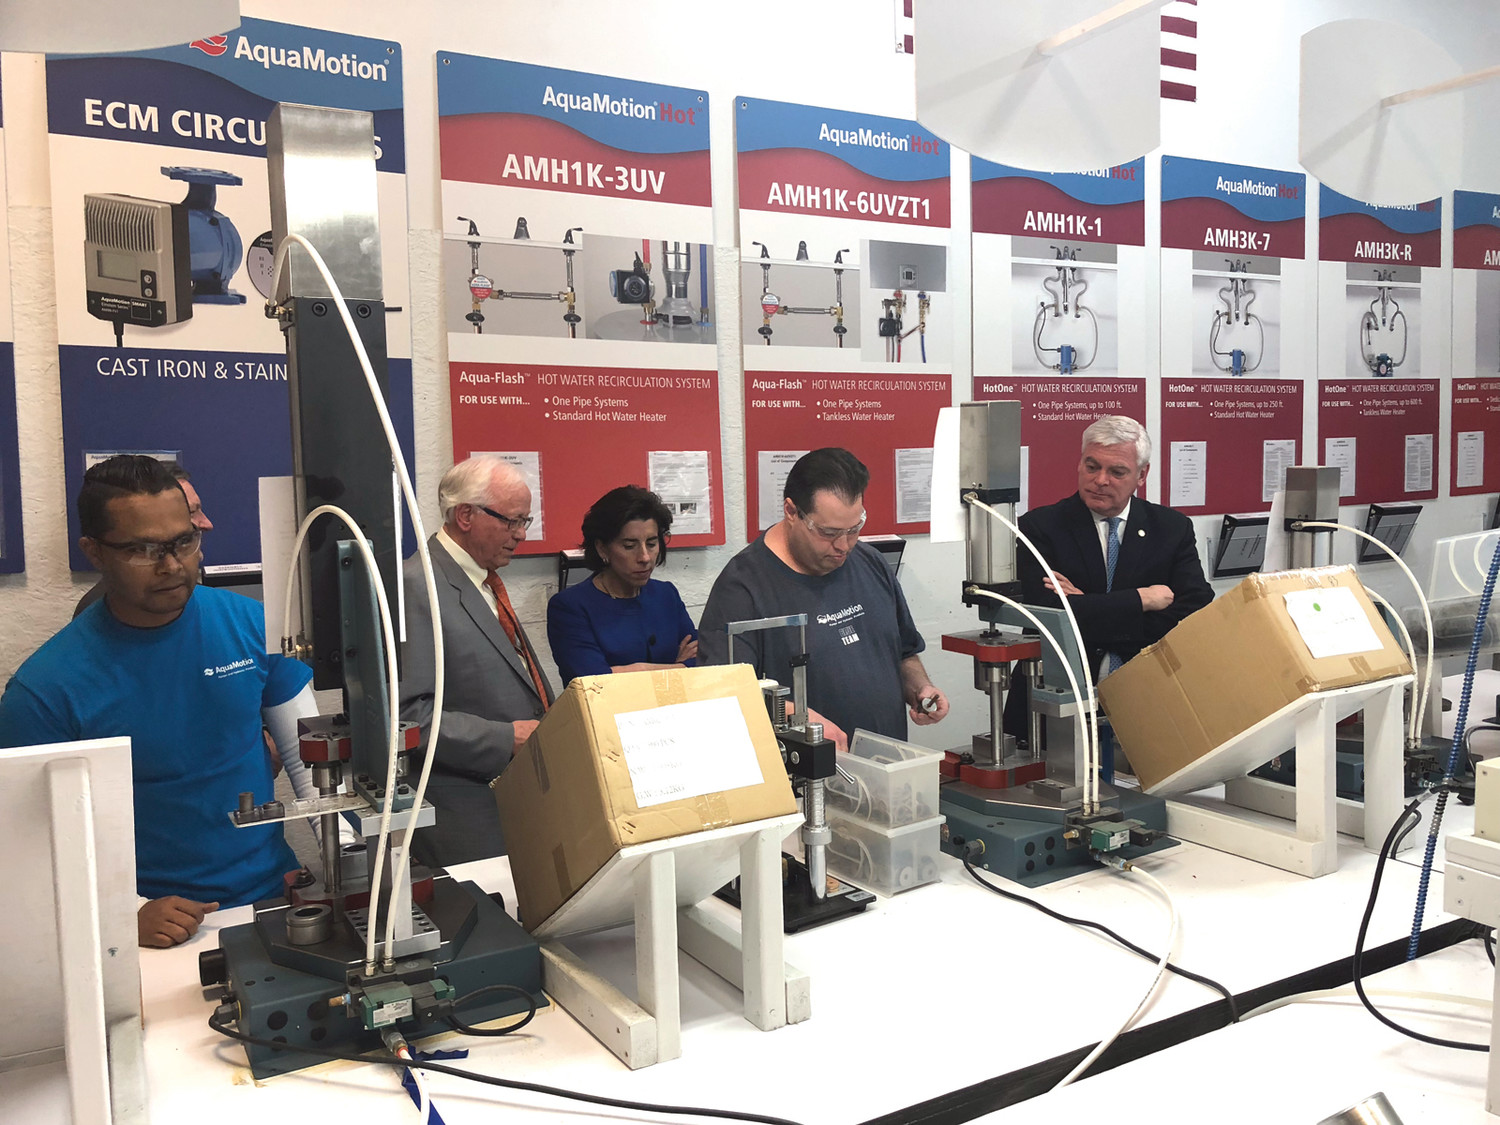 ON THE LINE: Governor Gina Raimondo, AquaMotion president Hans Kuster and Mayor Scott Avedisian observed as workers assembled plumbing products for AquaMotion from the initial assembly to the final testing.